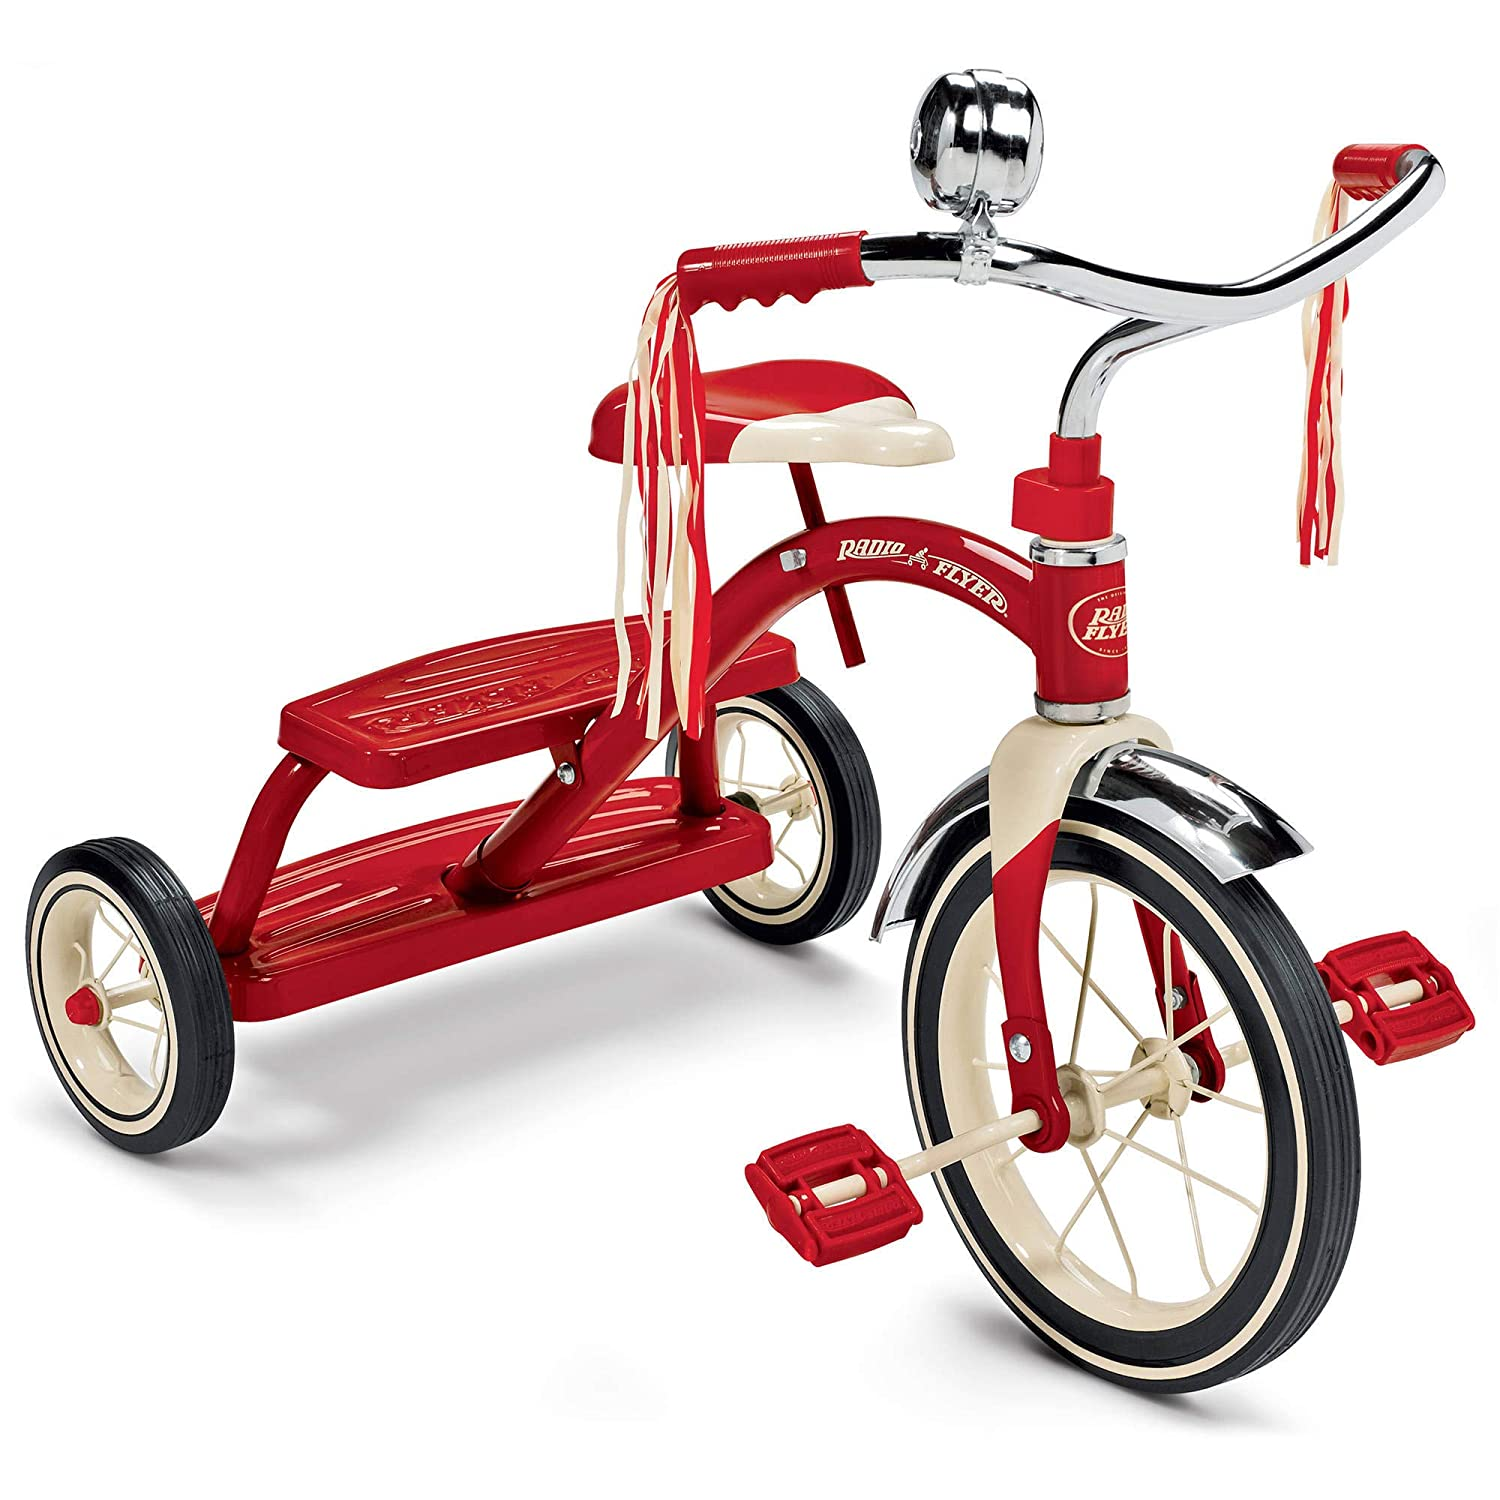 Radio Flyer Classic Red Dual Deck Front Tricycle- Red children's Tricycle- B0169MPYNU Adjustable Seat- Retro Design- Rubber-wheeled Tricycle- Chrome Front Fender- Double-deck- Step-in Back by Radio Flyer B0169MPYNU, apm24:cb5e77c3 --- number-directory.top